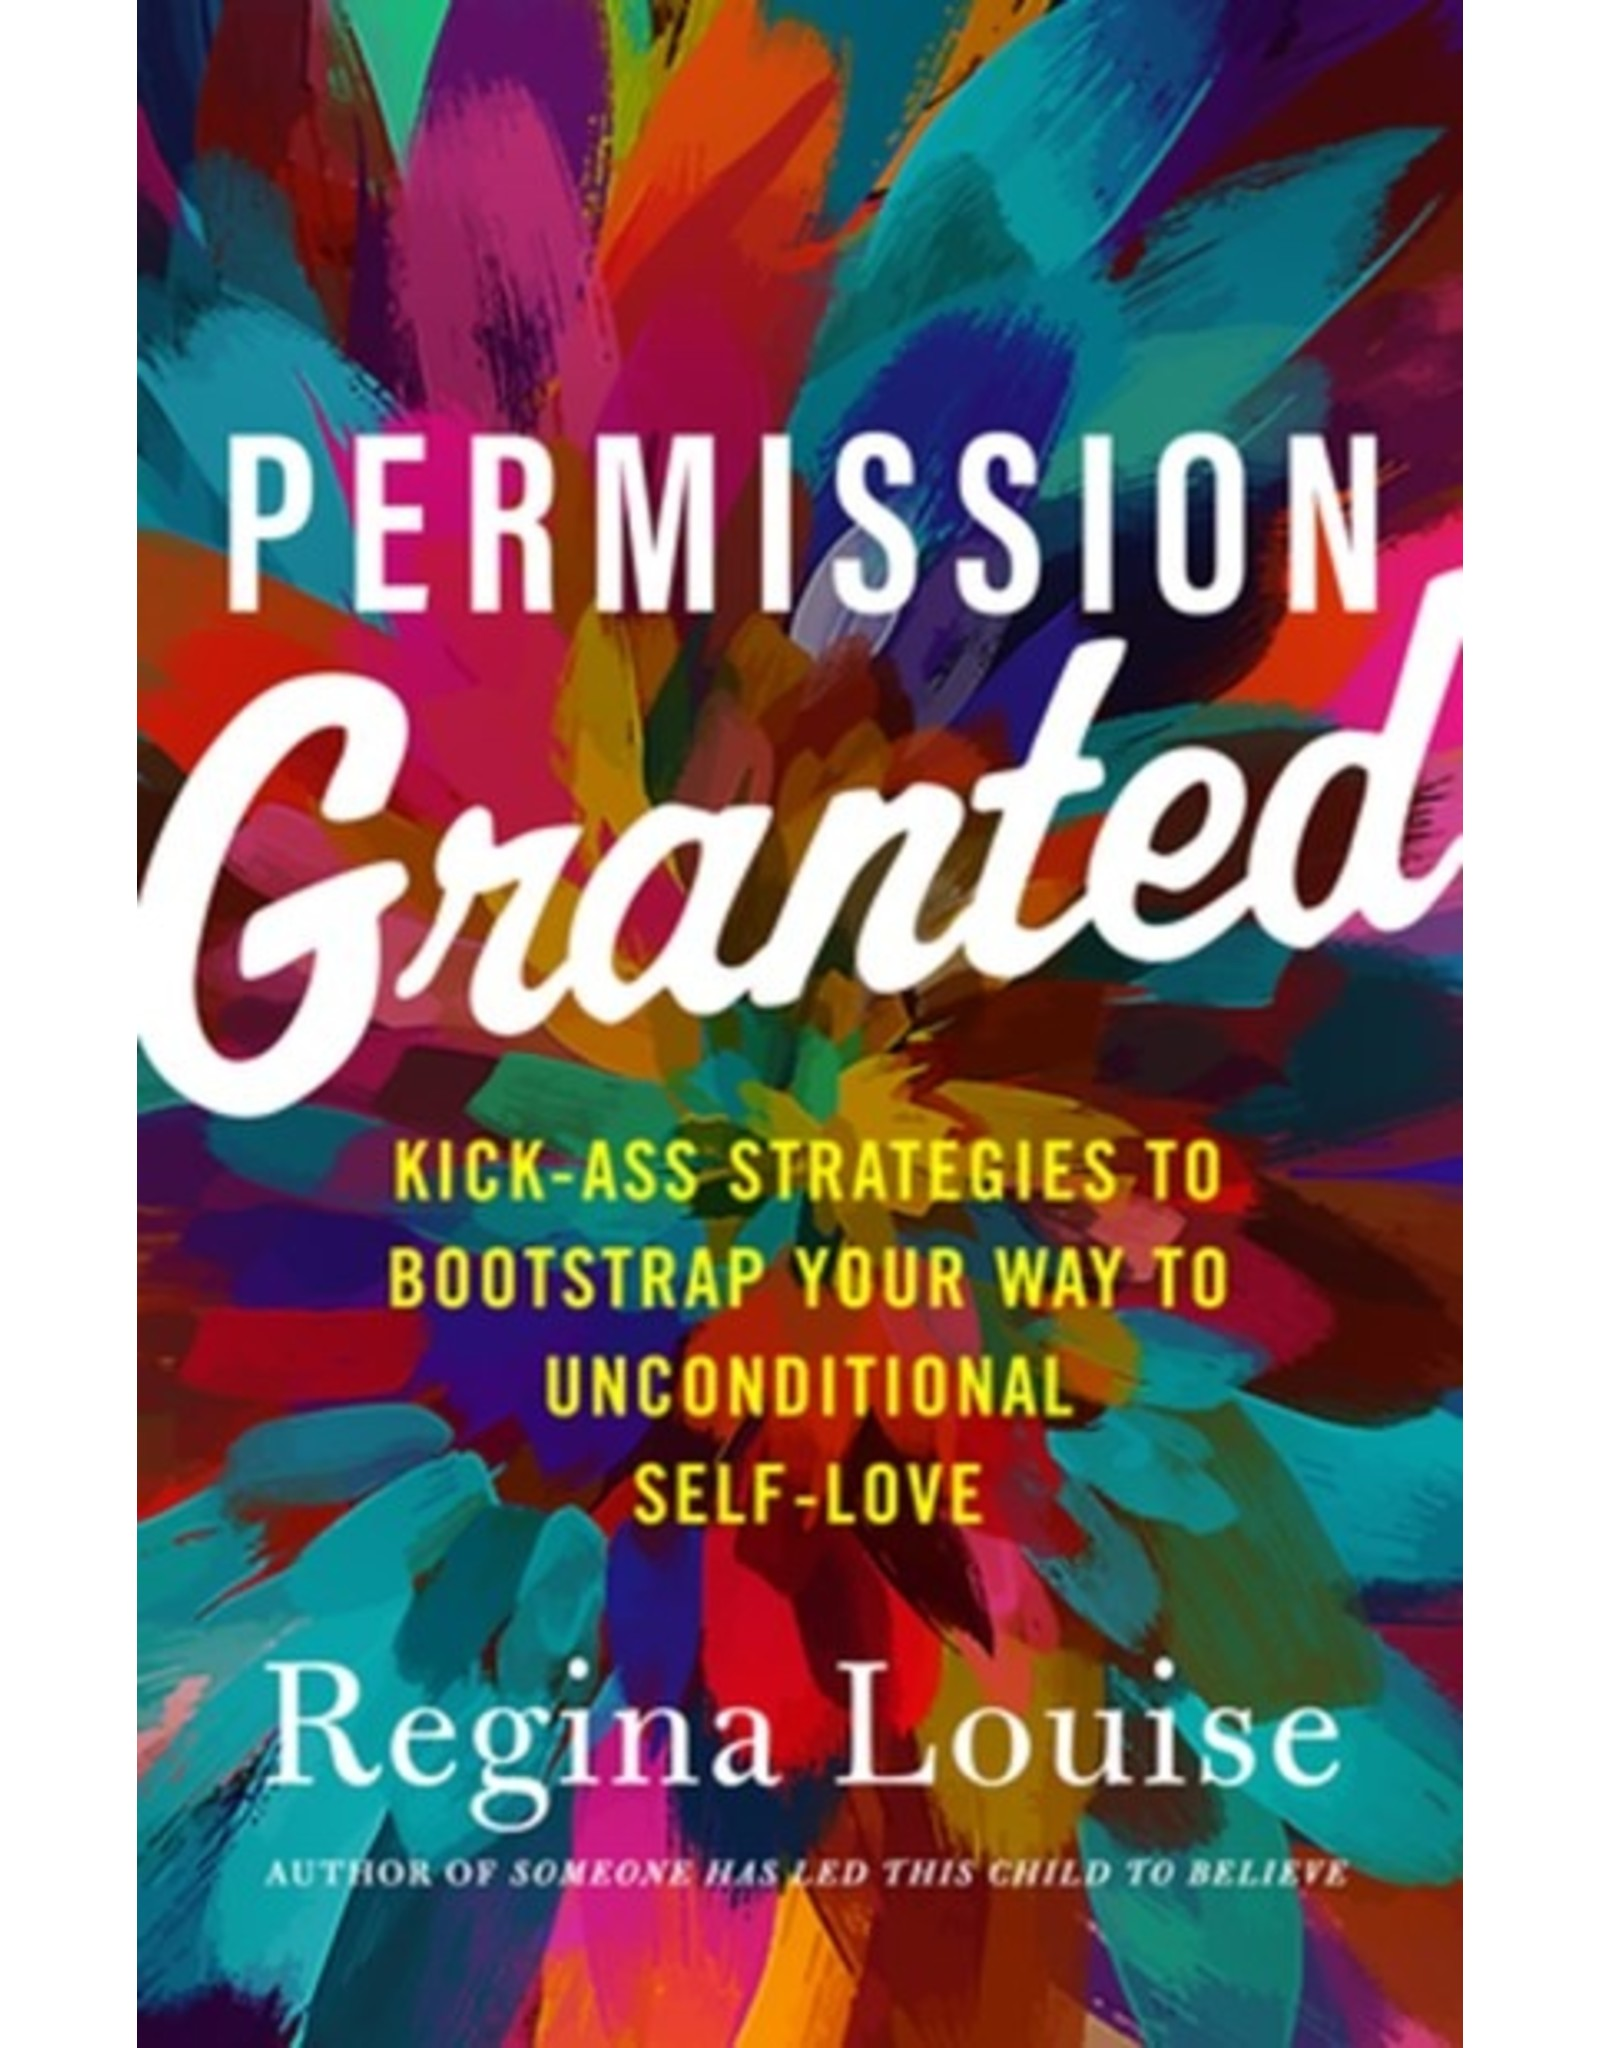 Books Permission Granted : Kick-Ass Strategies to Bootstrap Your Way to Unconditional Self-Love (Event Pre Order)